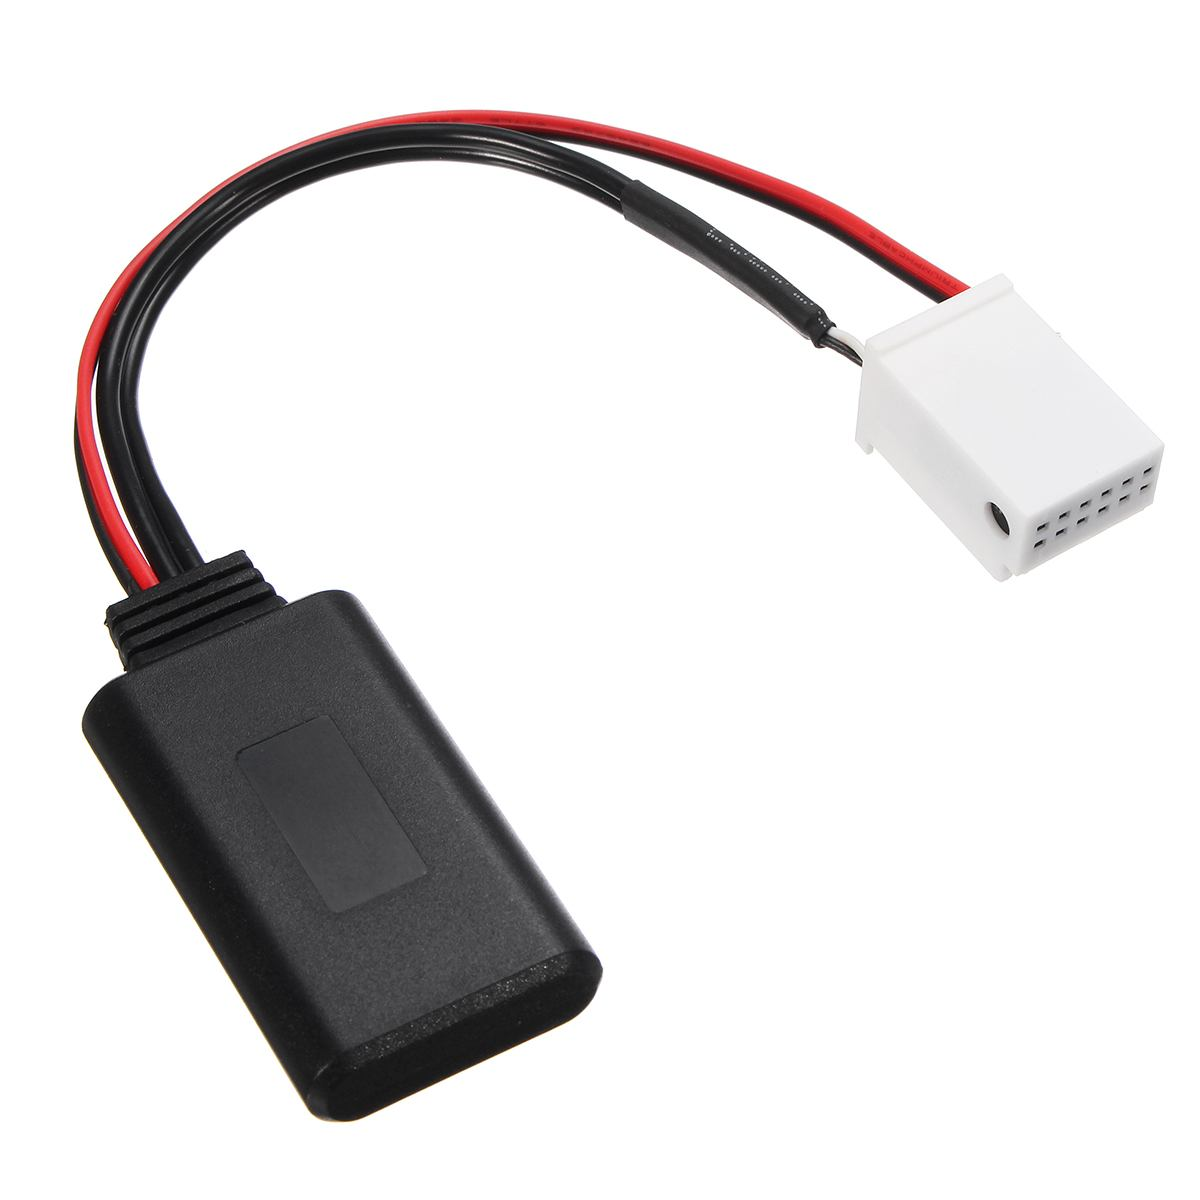 bluetooth Audio Adapter Cable For VW MCD RNS 510 RCD 210 310 500 510 Delta 6 Car Electronics Accessories